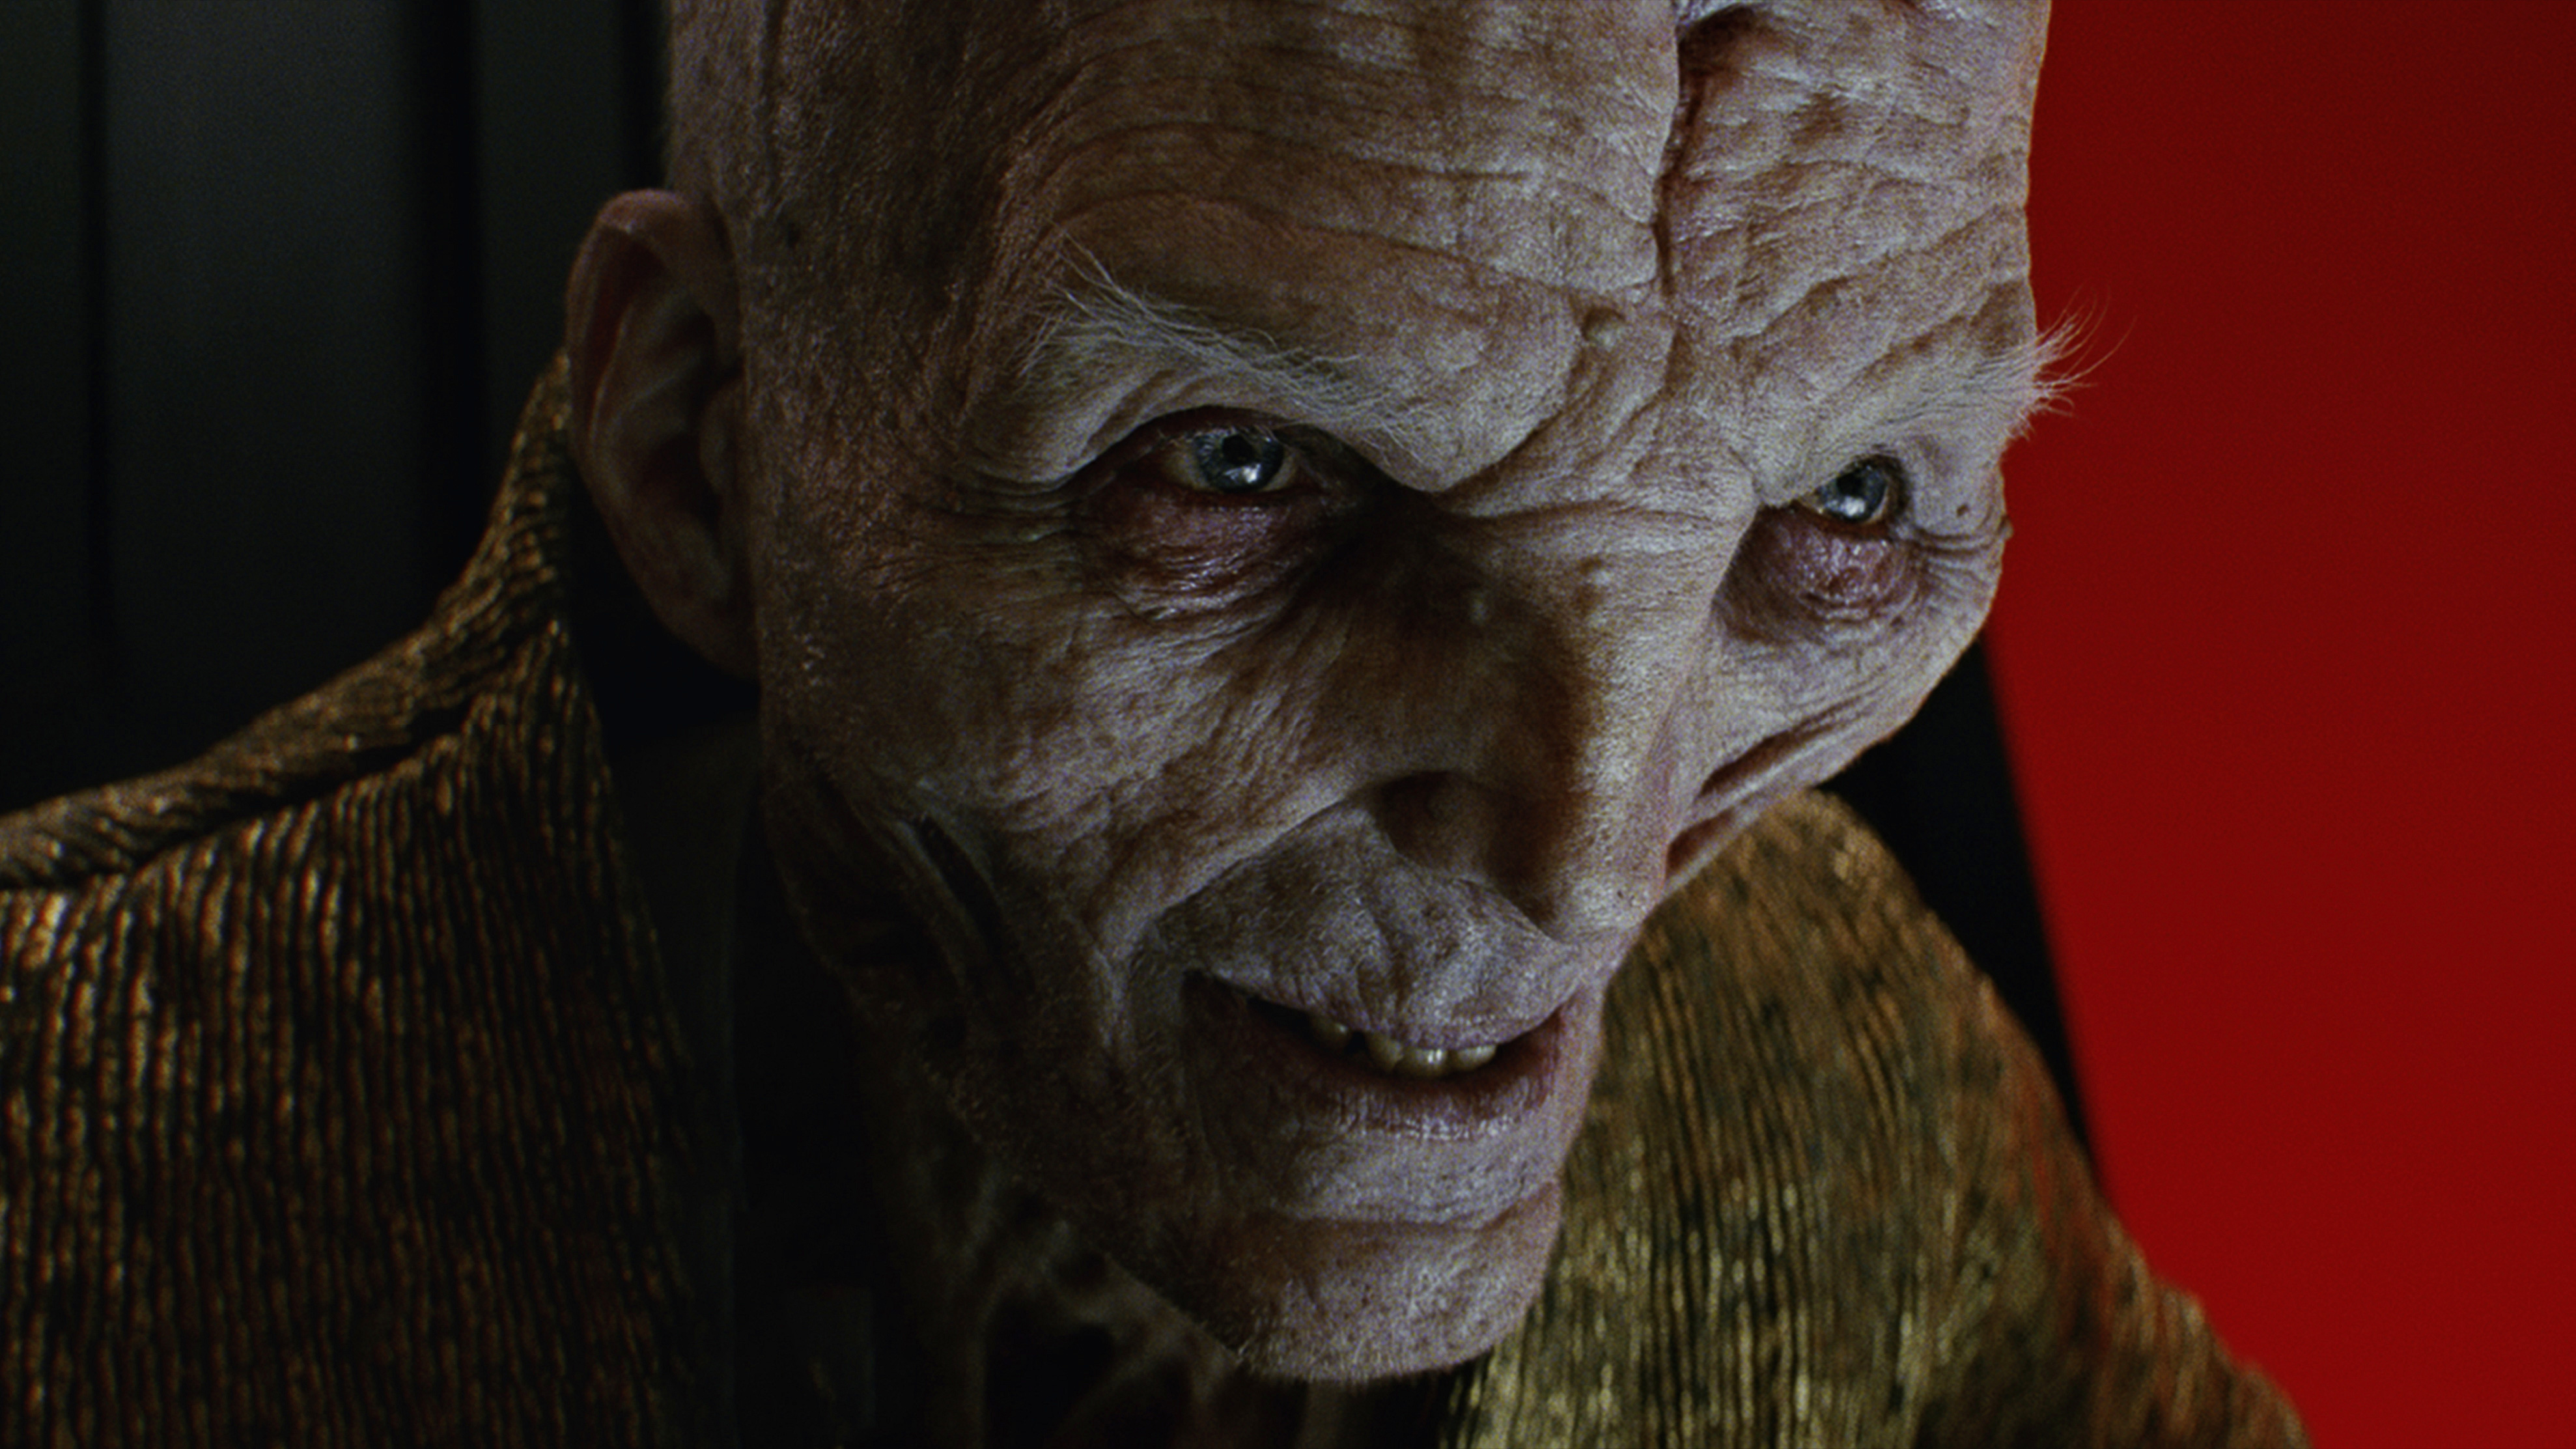 Supreme Leader Snoke Star Wars The Last Jedi Hd Movies 4k Wallpapers Images Backgrounds Photos And Pictures